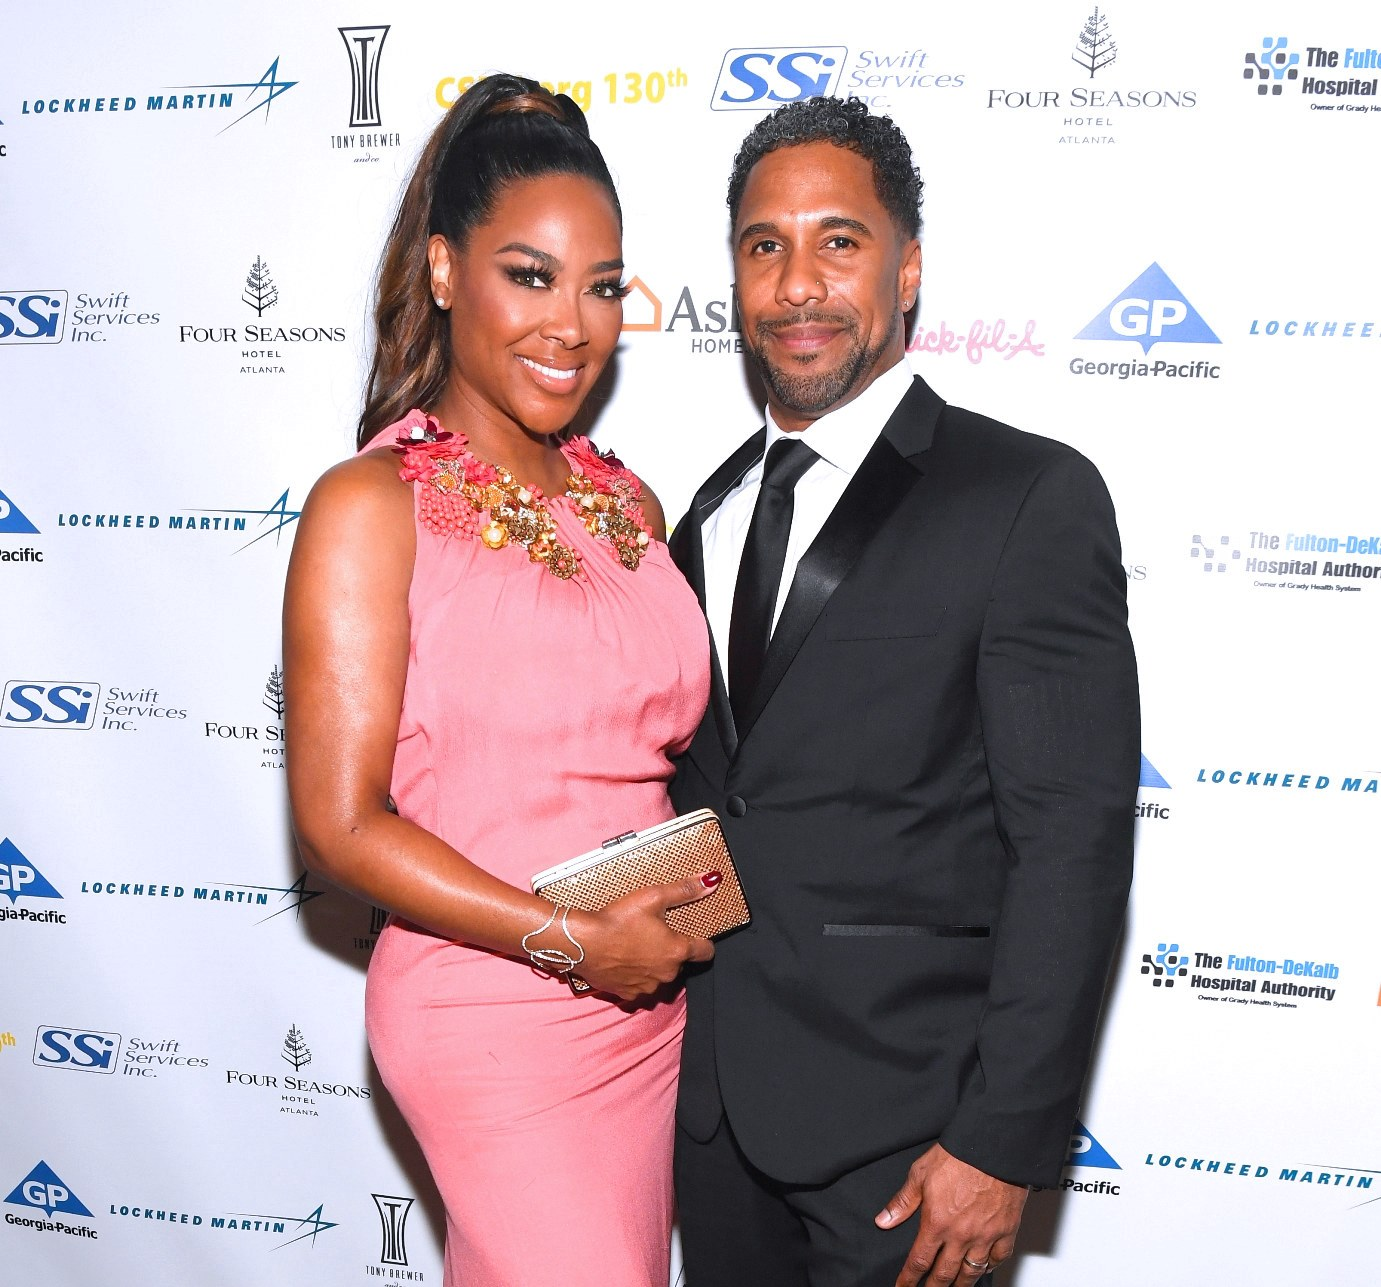 RHOA Star Kenya Moore Announces She's Getting a Divorce 2 Years After Marrying Marc Daly, Read Her Statement as He Also Speaks Out on Split